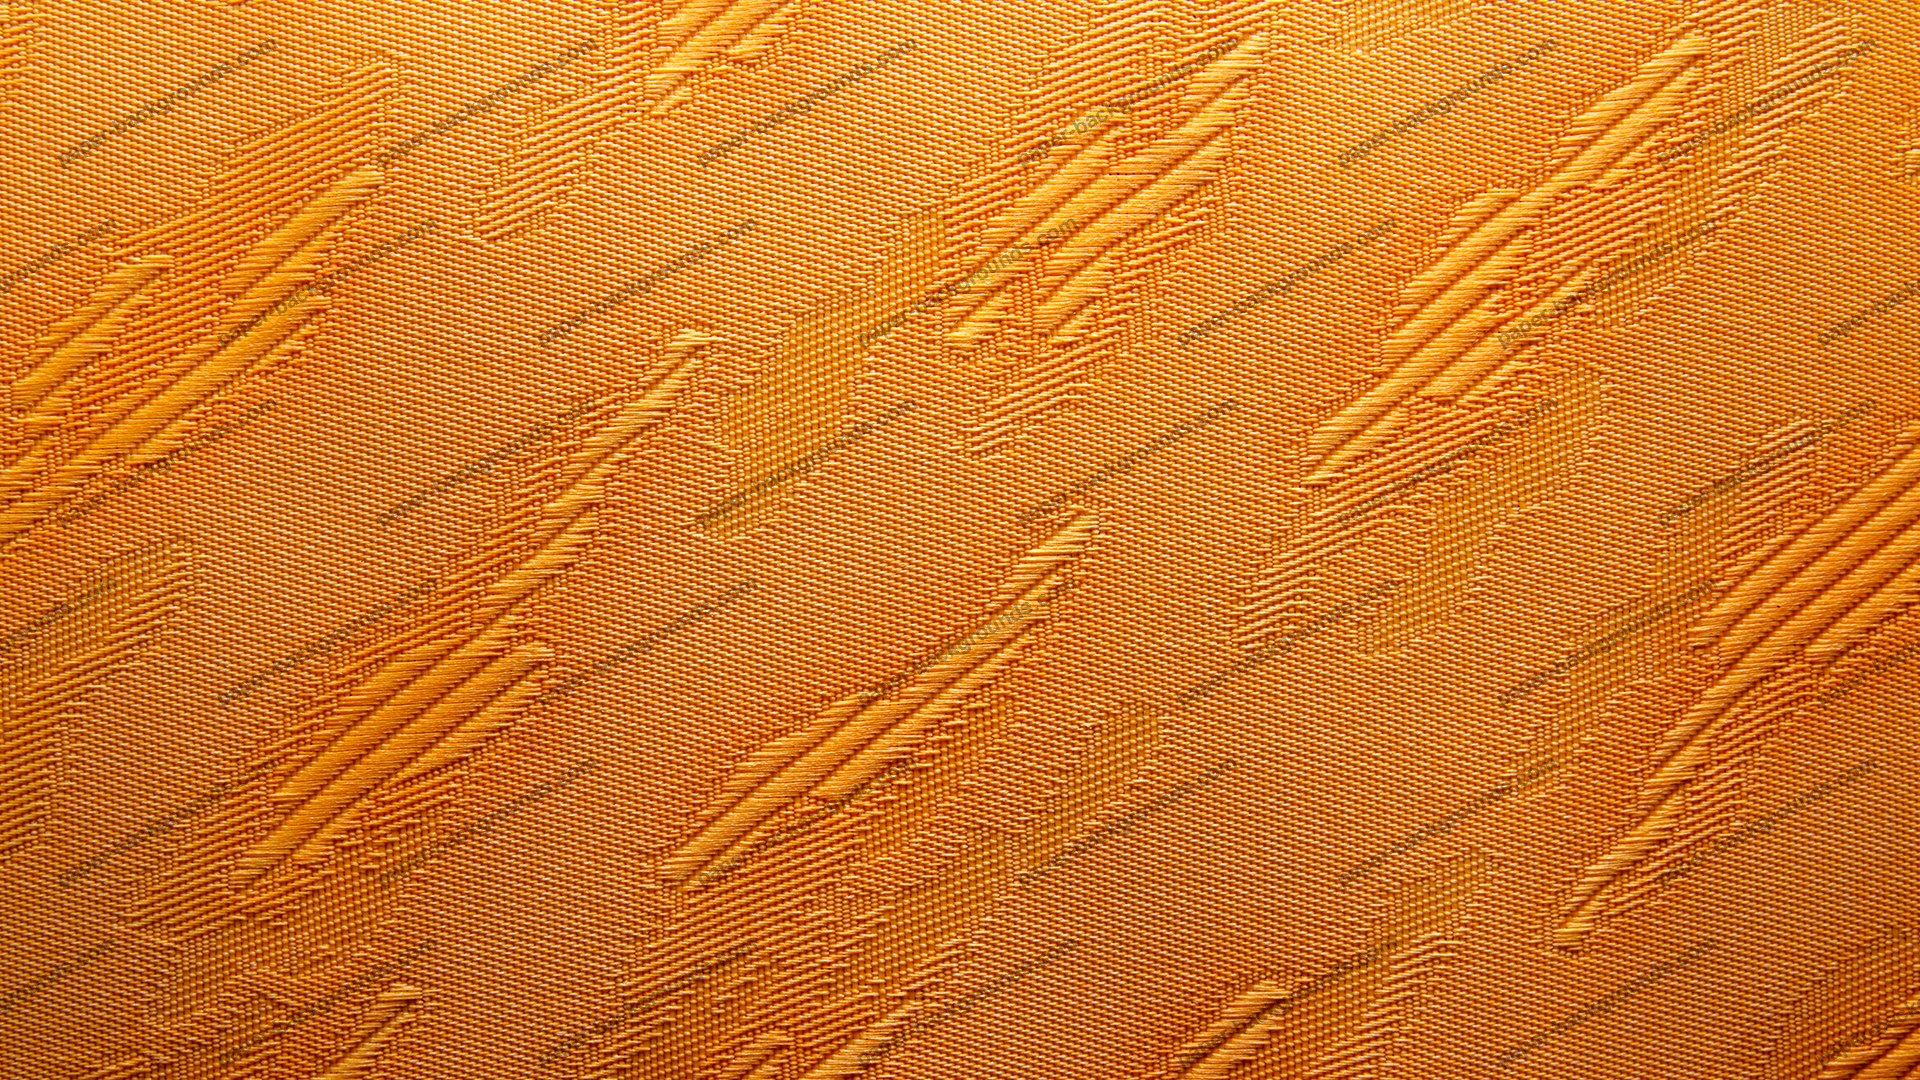 Yellow Orange Canvas Texture HD 1920 x 1080p